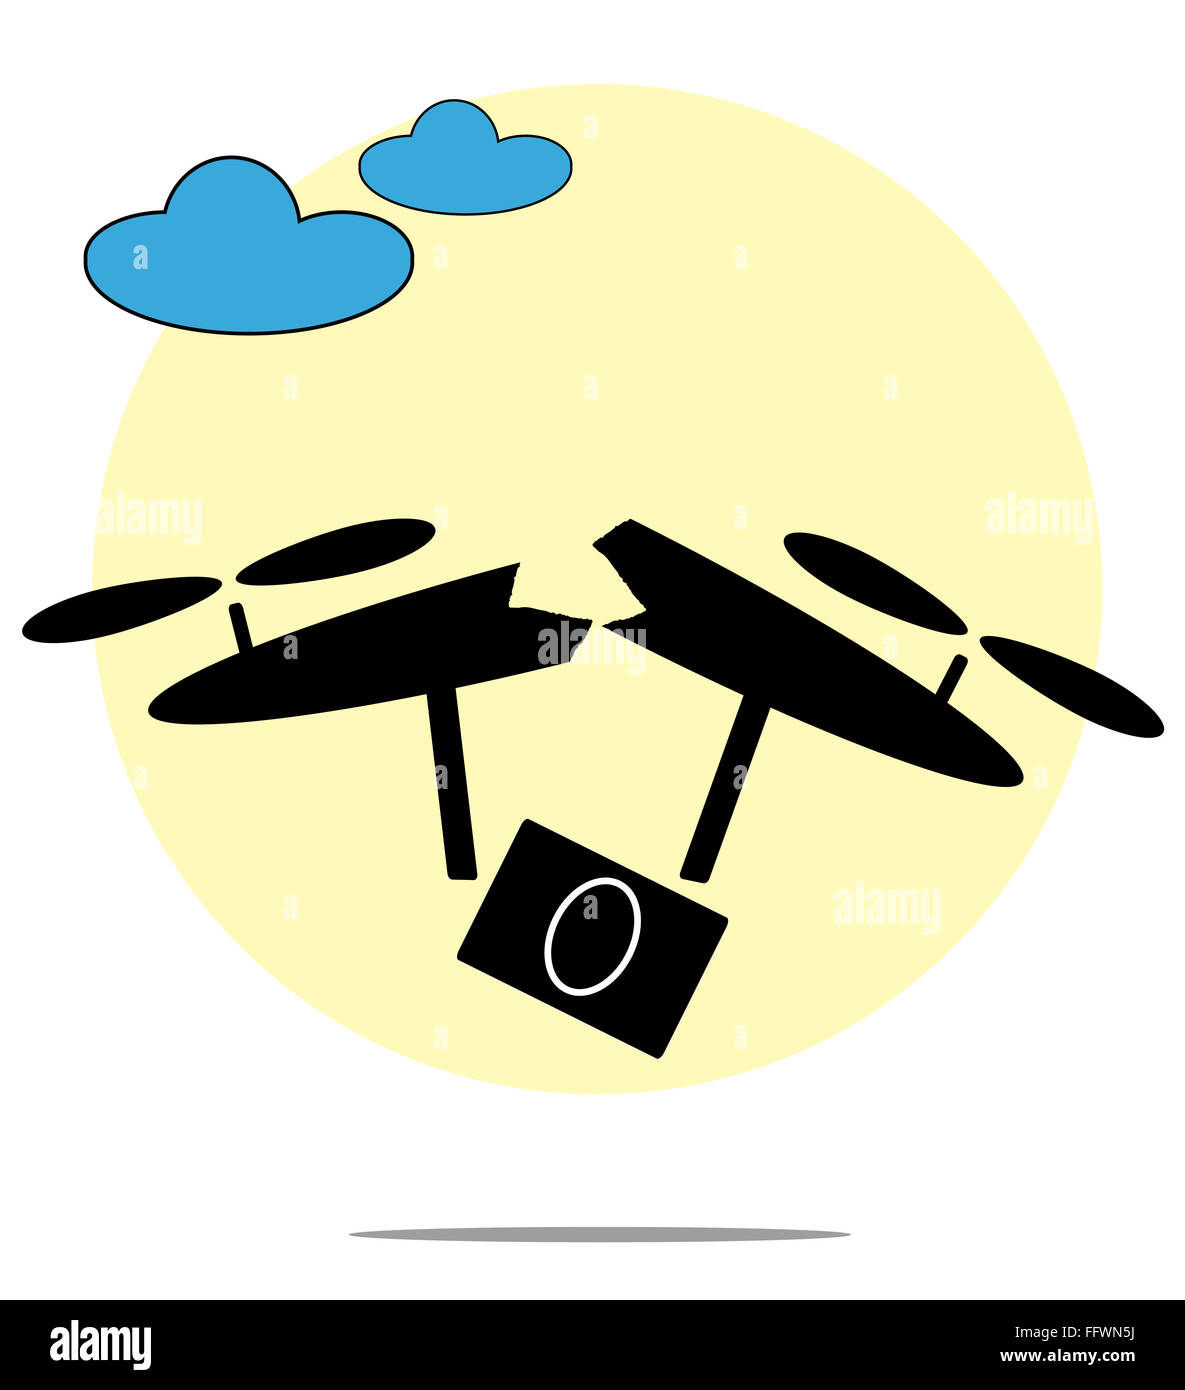 Illustration of broken drone with circle background - Stock Image